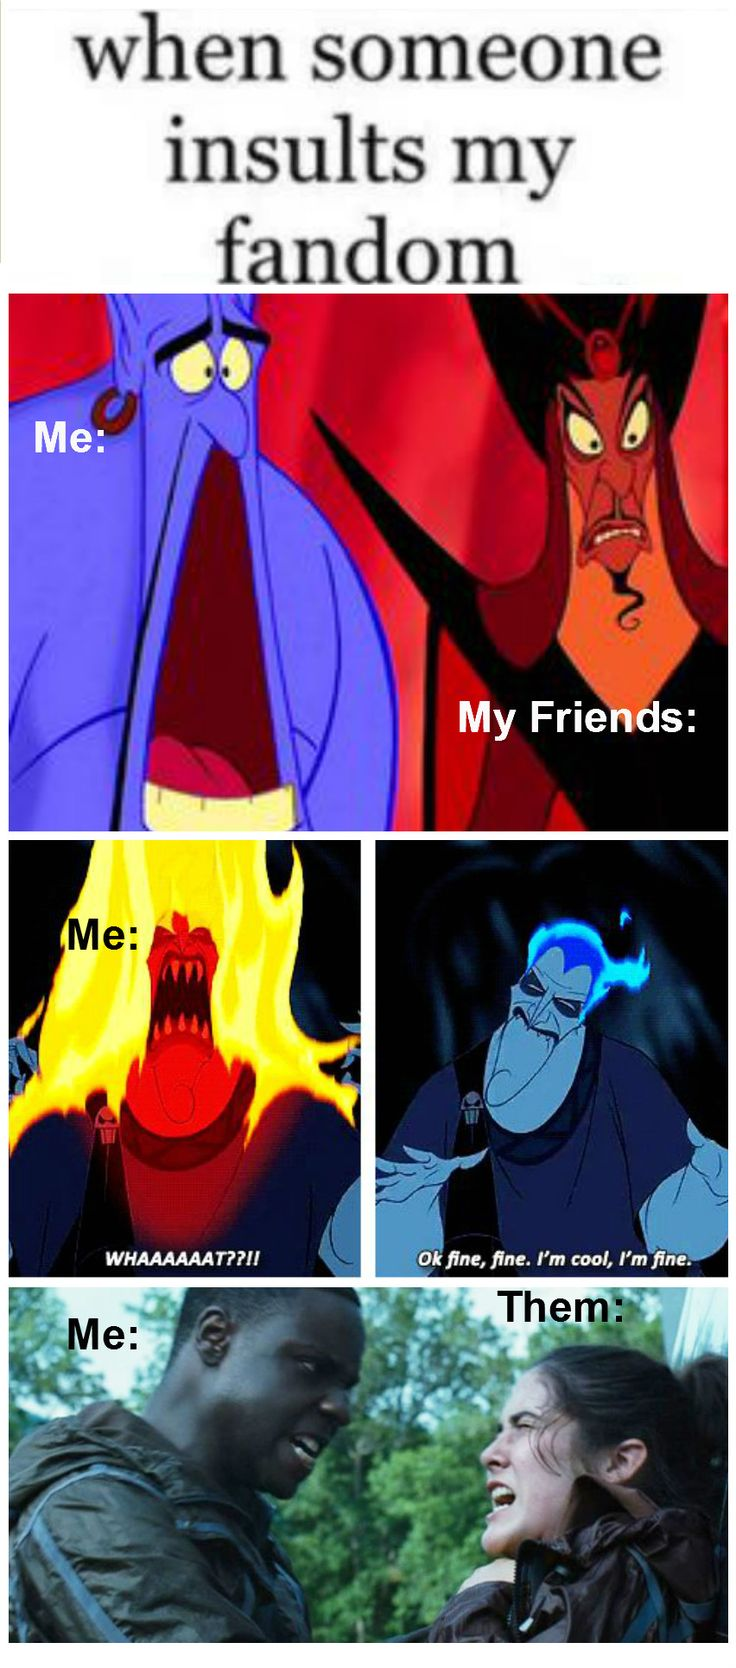 When someone insults my fandom. Going thought the stages: Shock, Rage, and Attack. Some of My fandoms: PJO/HOO/TOA, HP, Lunar Chronicles, Artemis Fowl, Rangers Apprentice/Brotherband Chronicles, THG, TMR, The Selection, TMI/TID, etc. Add your own in the comments